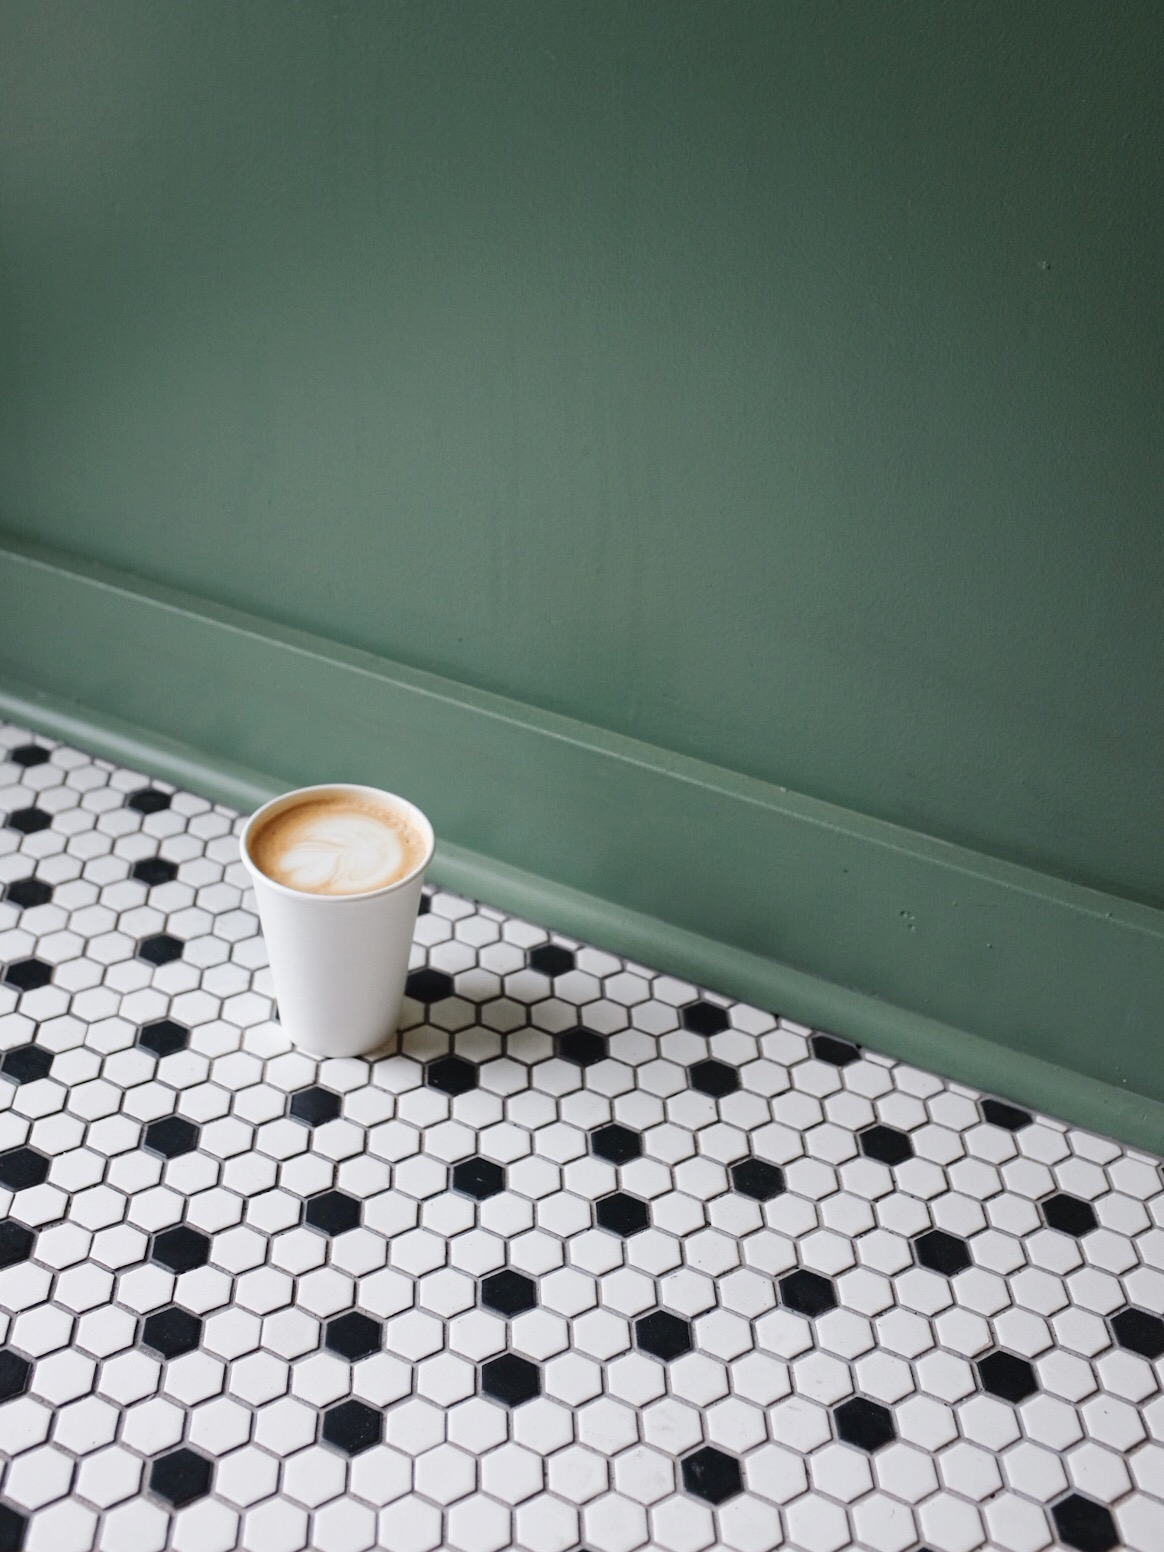 minimal coffee shot tiles